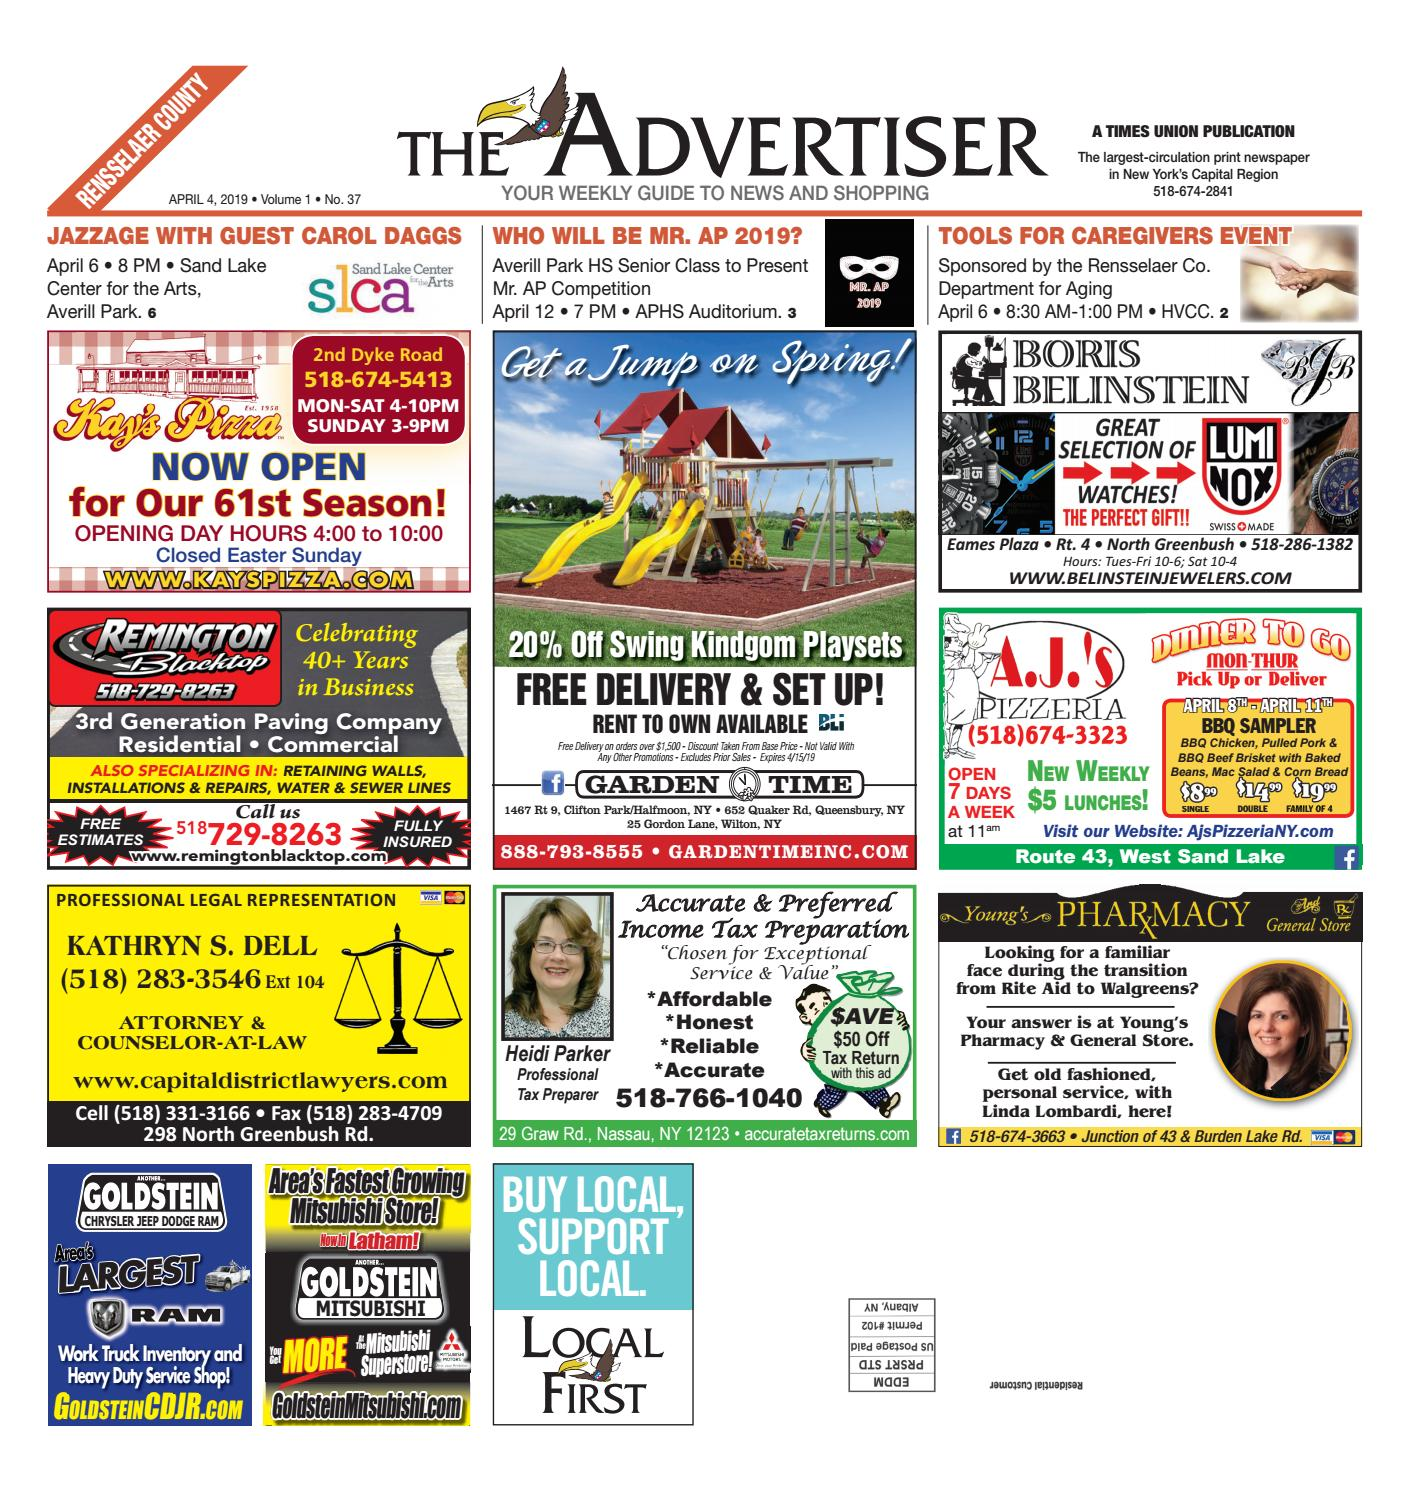 Local First The Advertiser 040419 by Capital Region Weekly